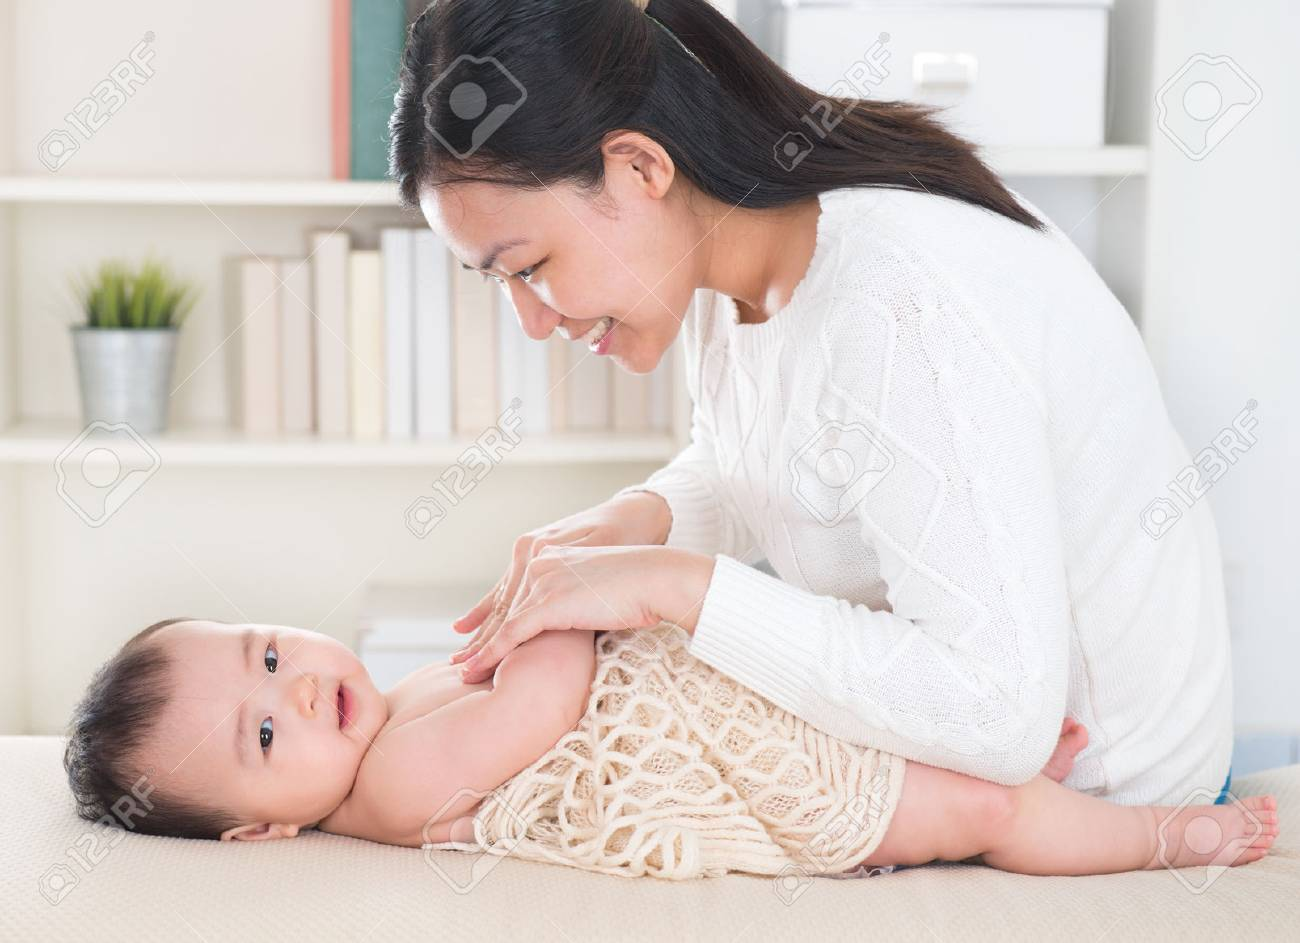 Asian mother giving massage to baby girl at home. Stock Photo - 22550871